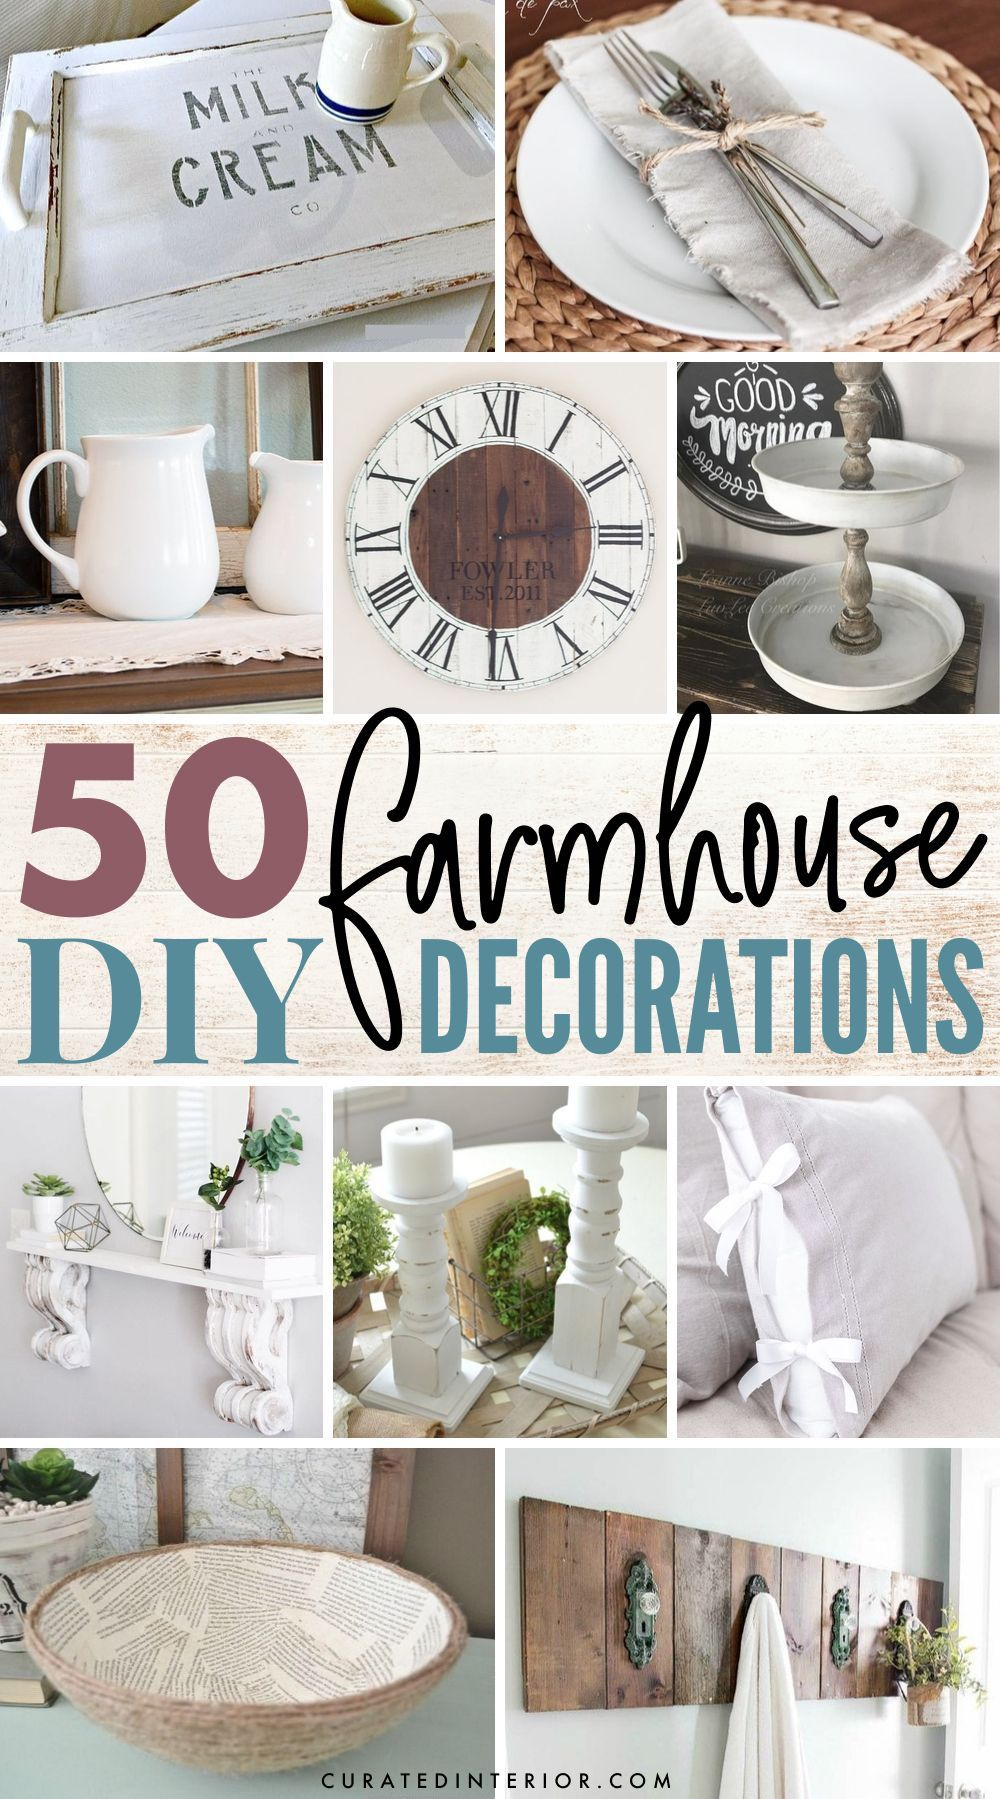 50 Farmhouse DIY Decorations